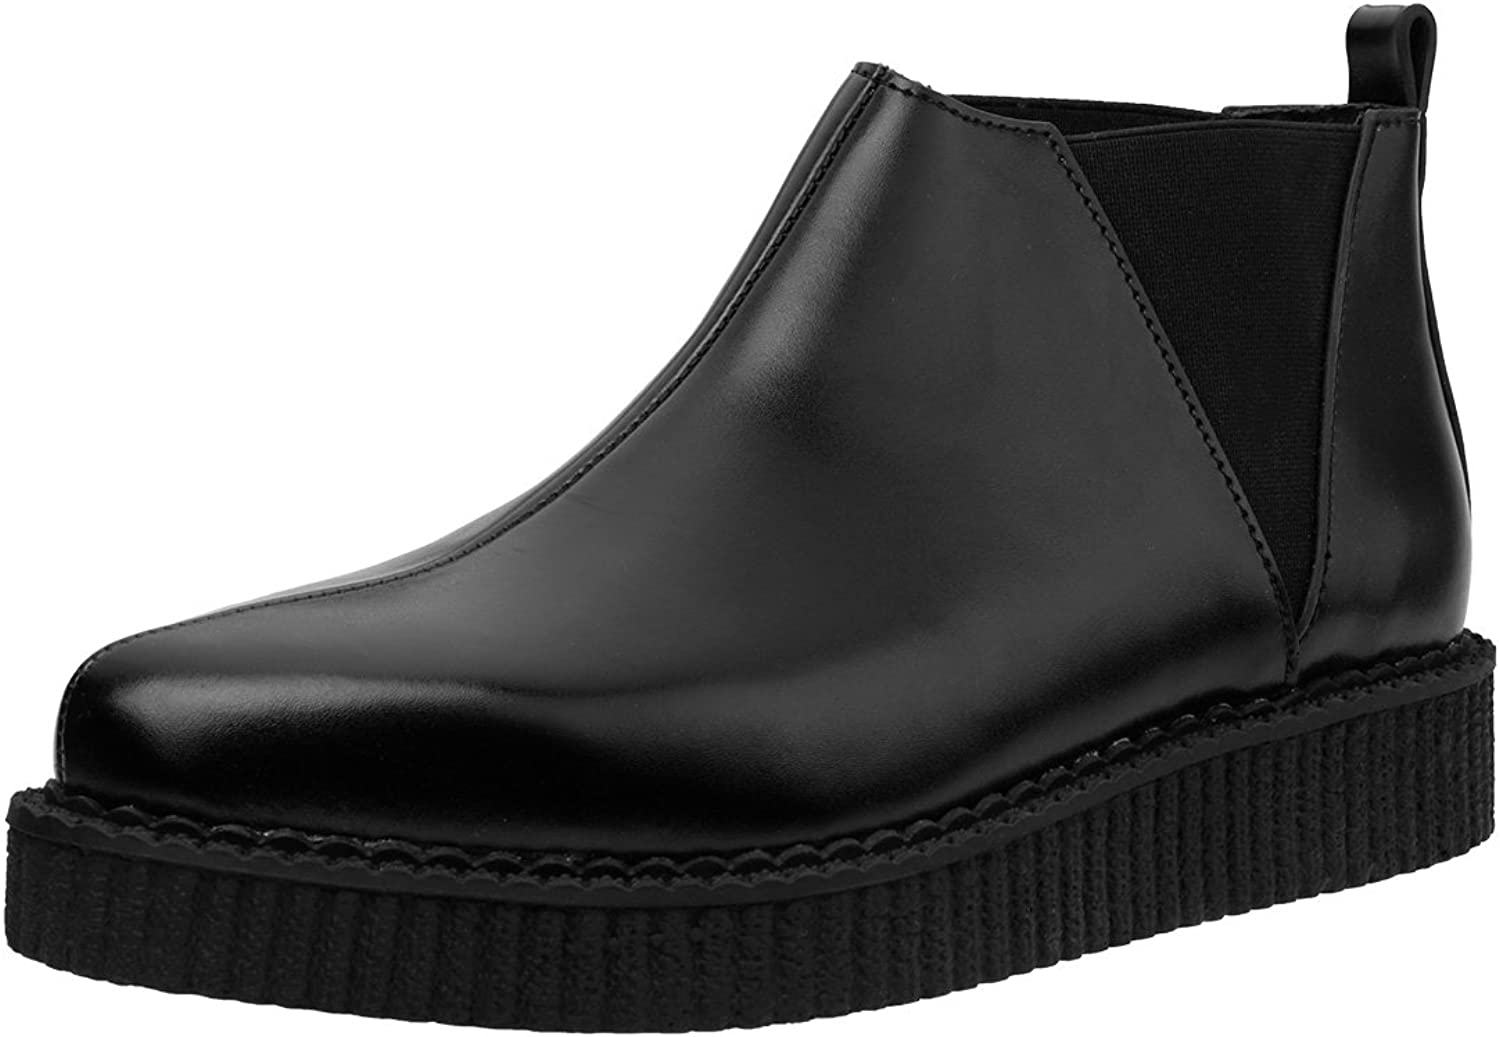 T.U.K. Original Footwear Unisex A9177 Creeper Chelsea Boot